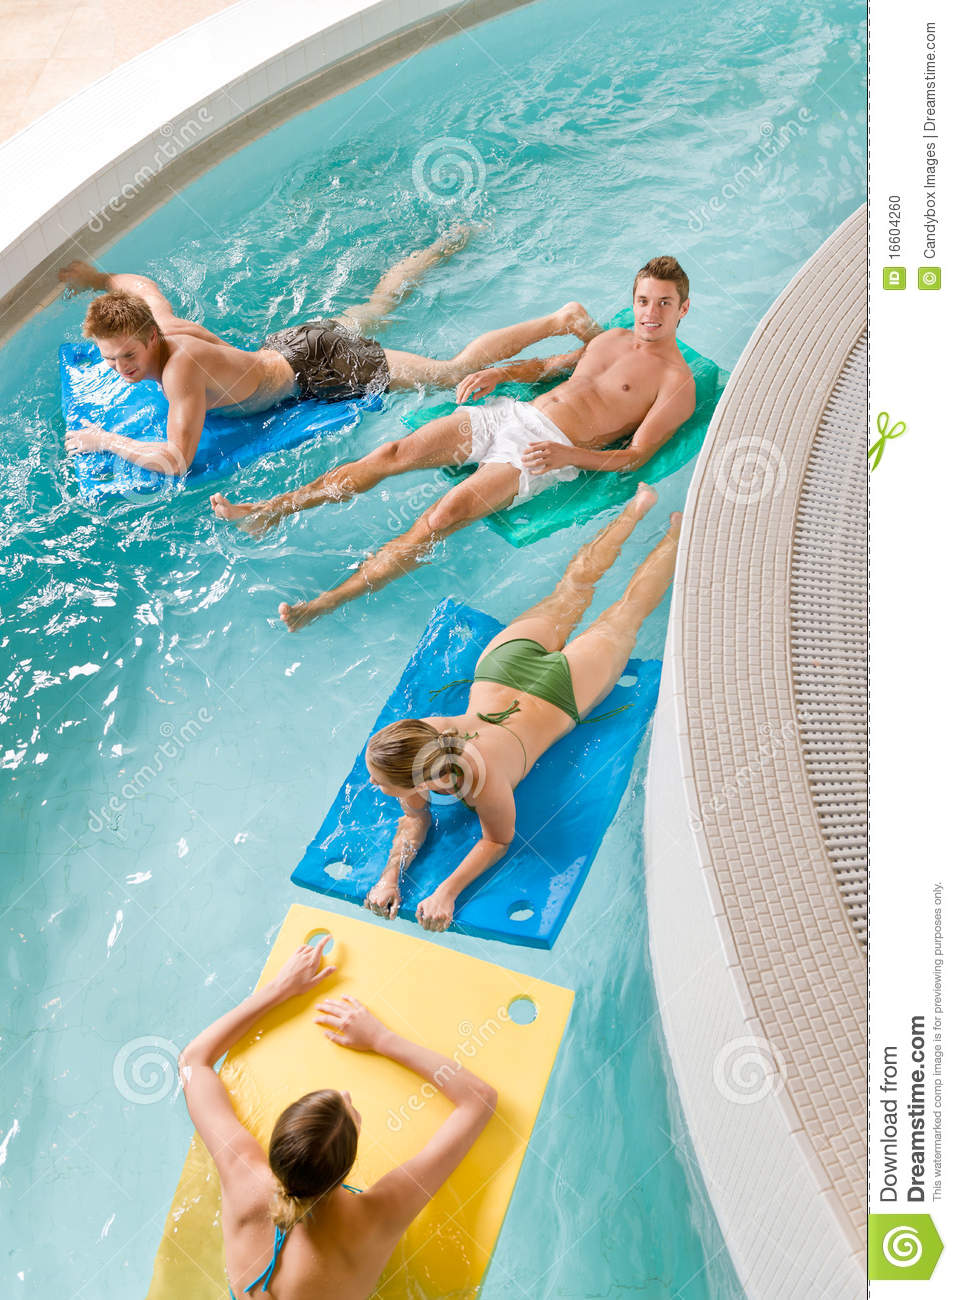 How to Have Fun in the Pool